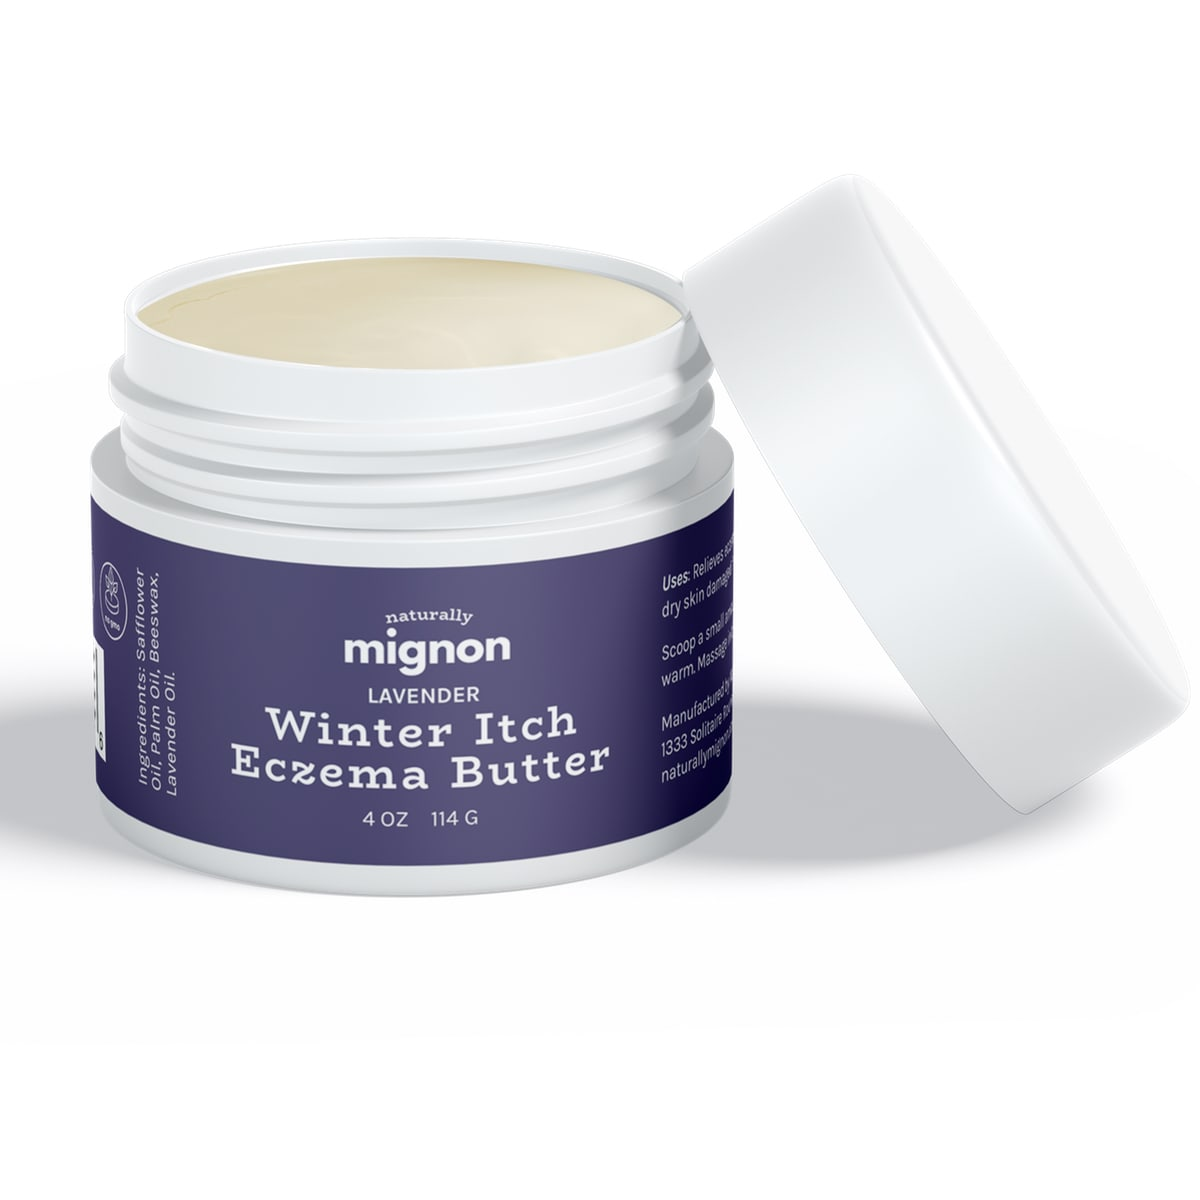 winter-itch-eczema-butter-lavender-04